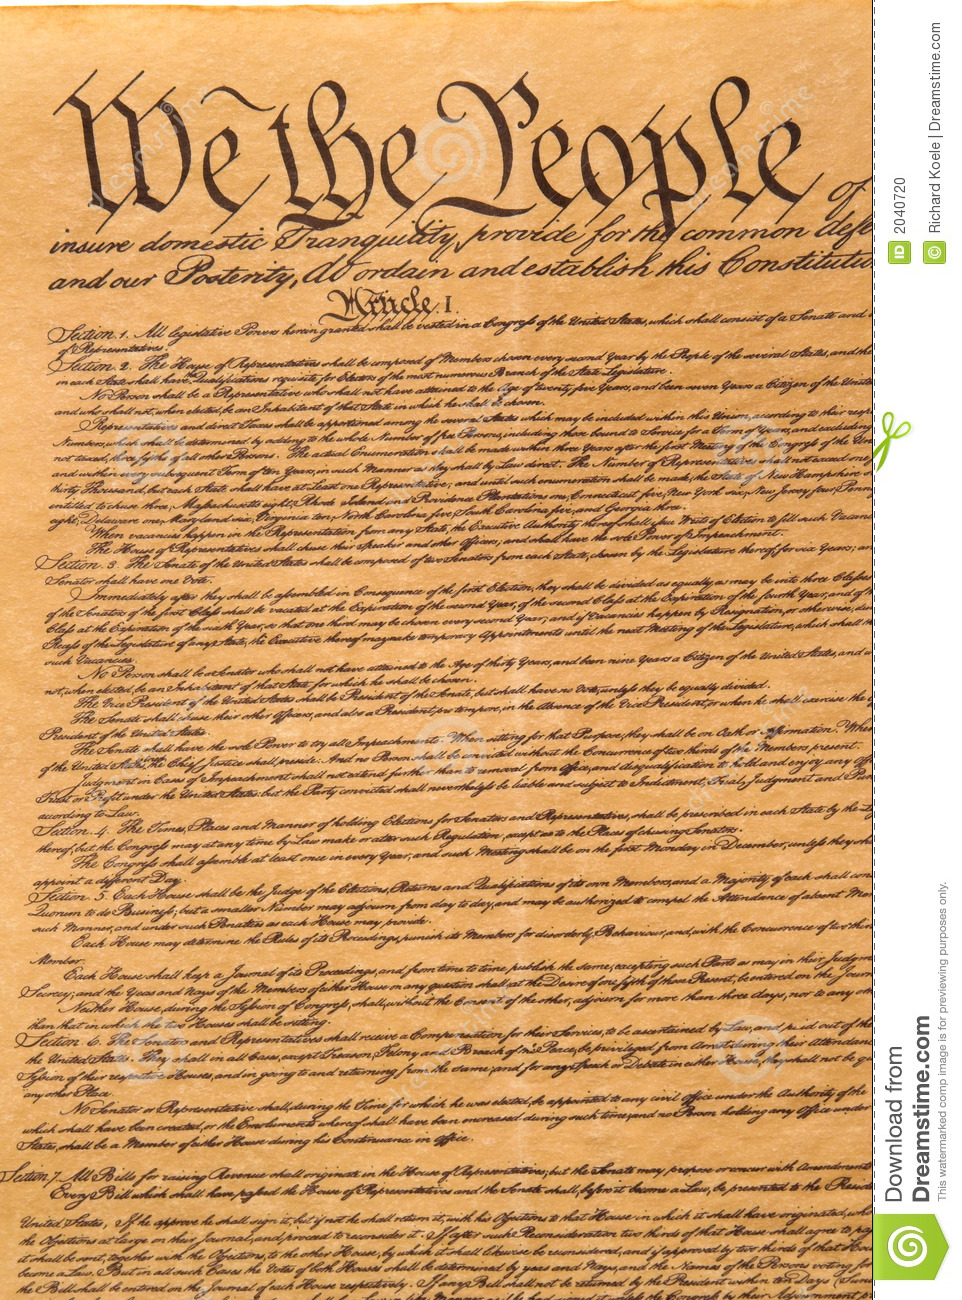 THE U.S. CONSTITUTION AND FASCINATING FACTS ABOUT IT. (8th.edition-5th.printing)